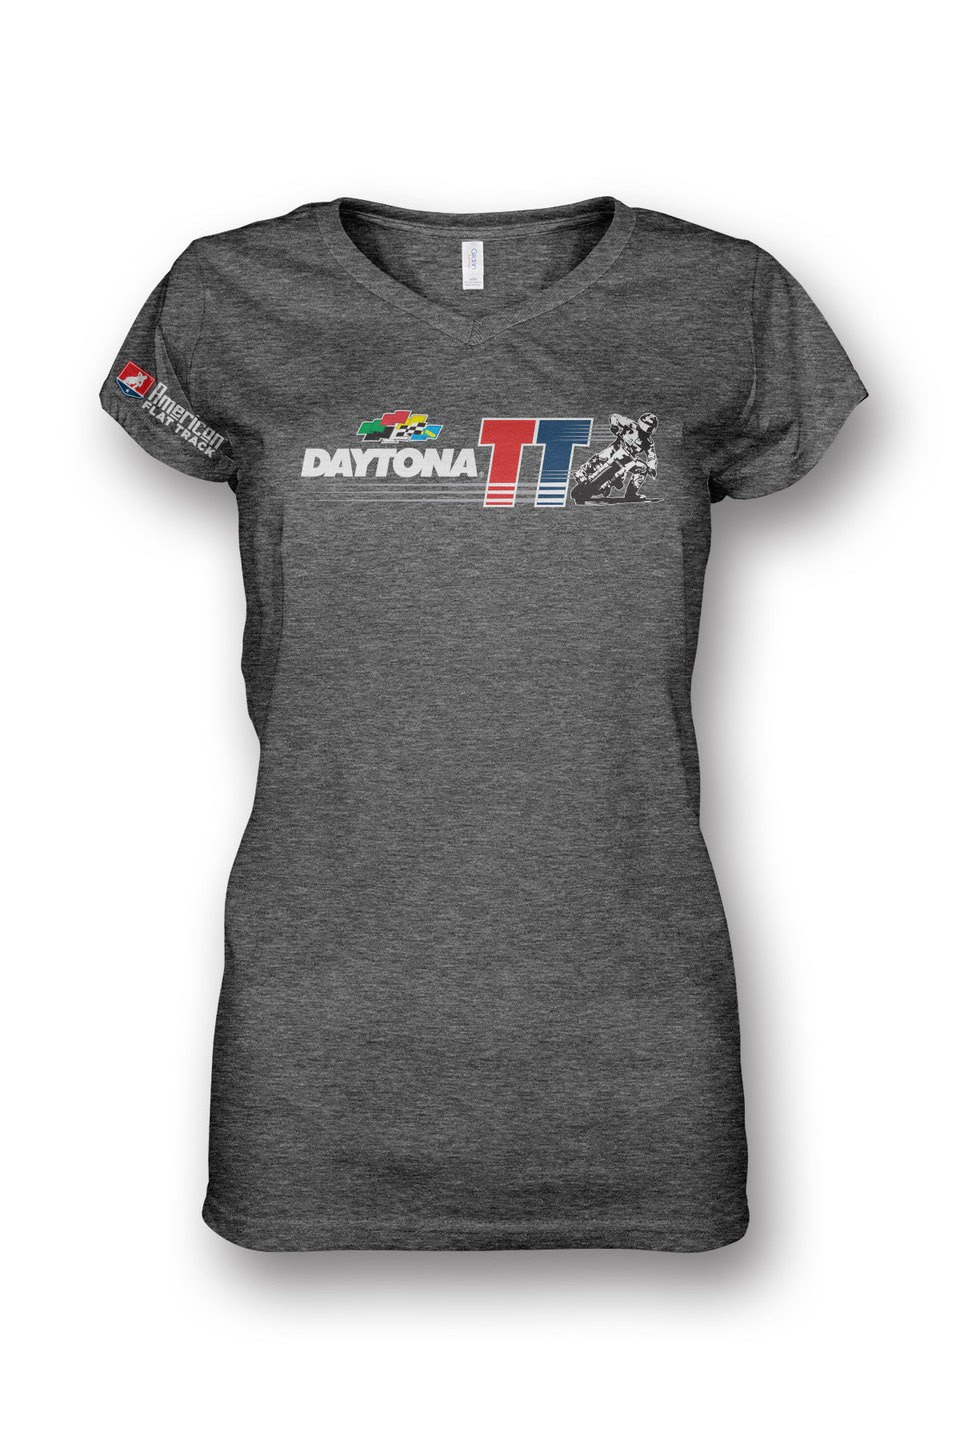 Event: 2017 Daytona - Women's V-Neck S/S Grey